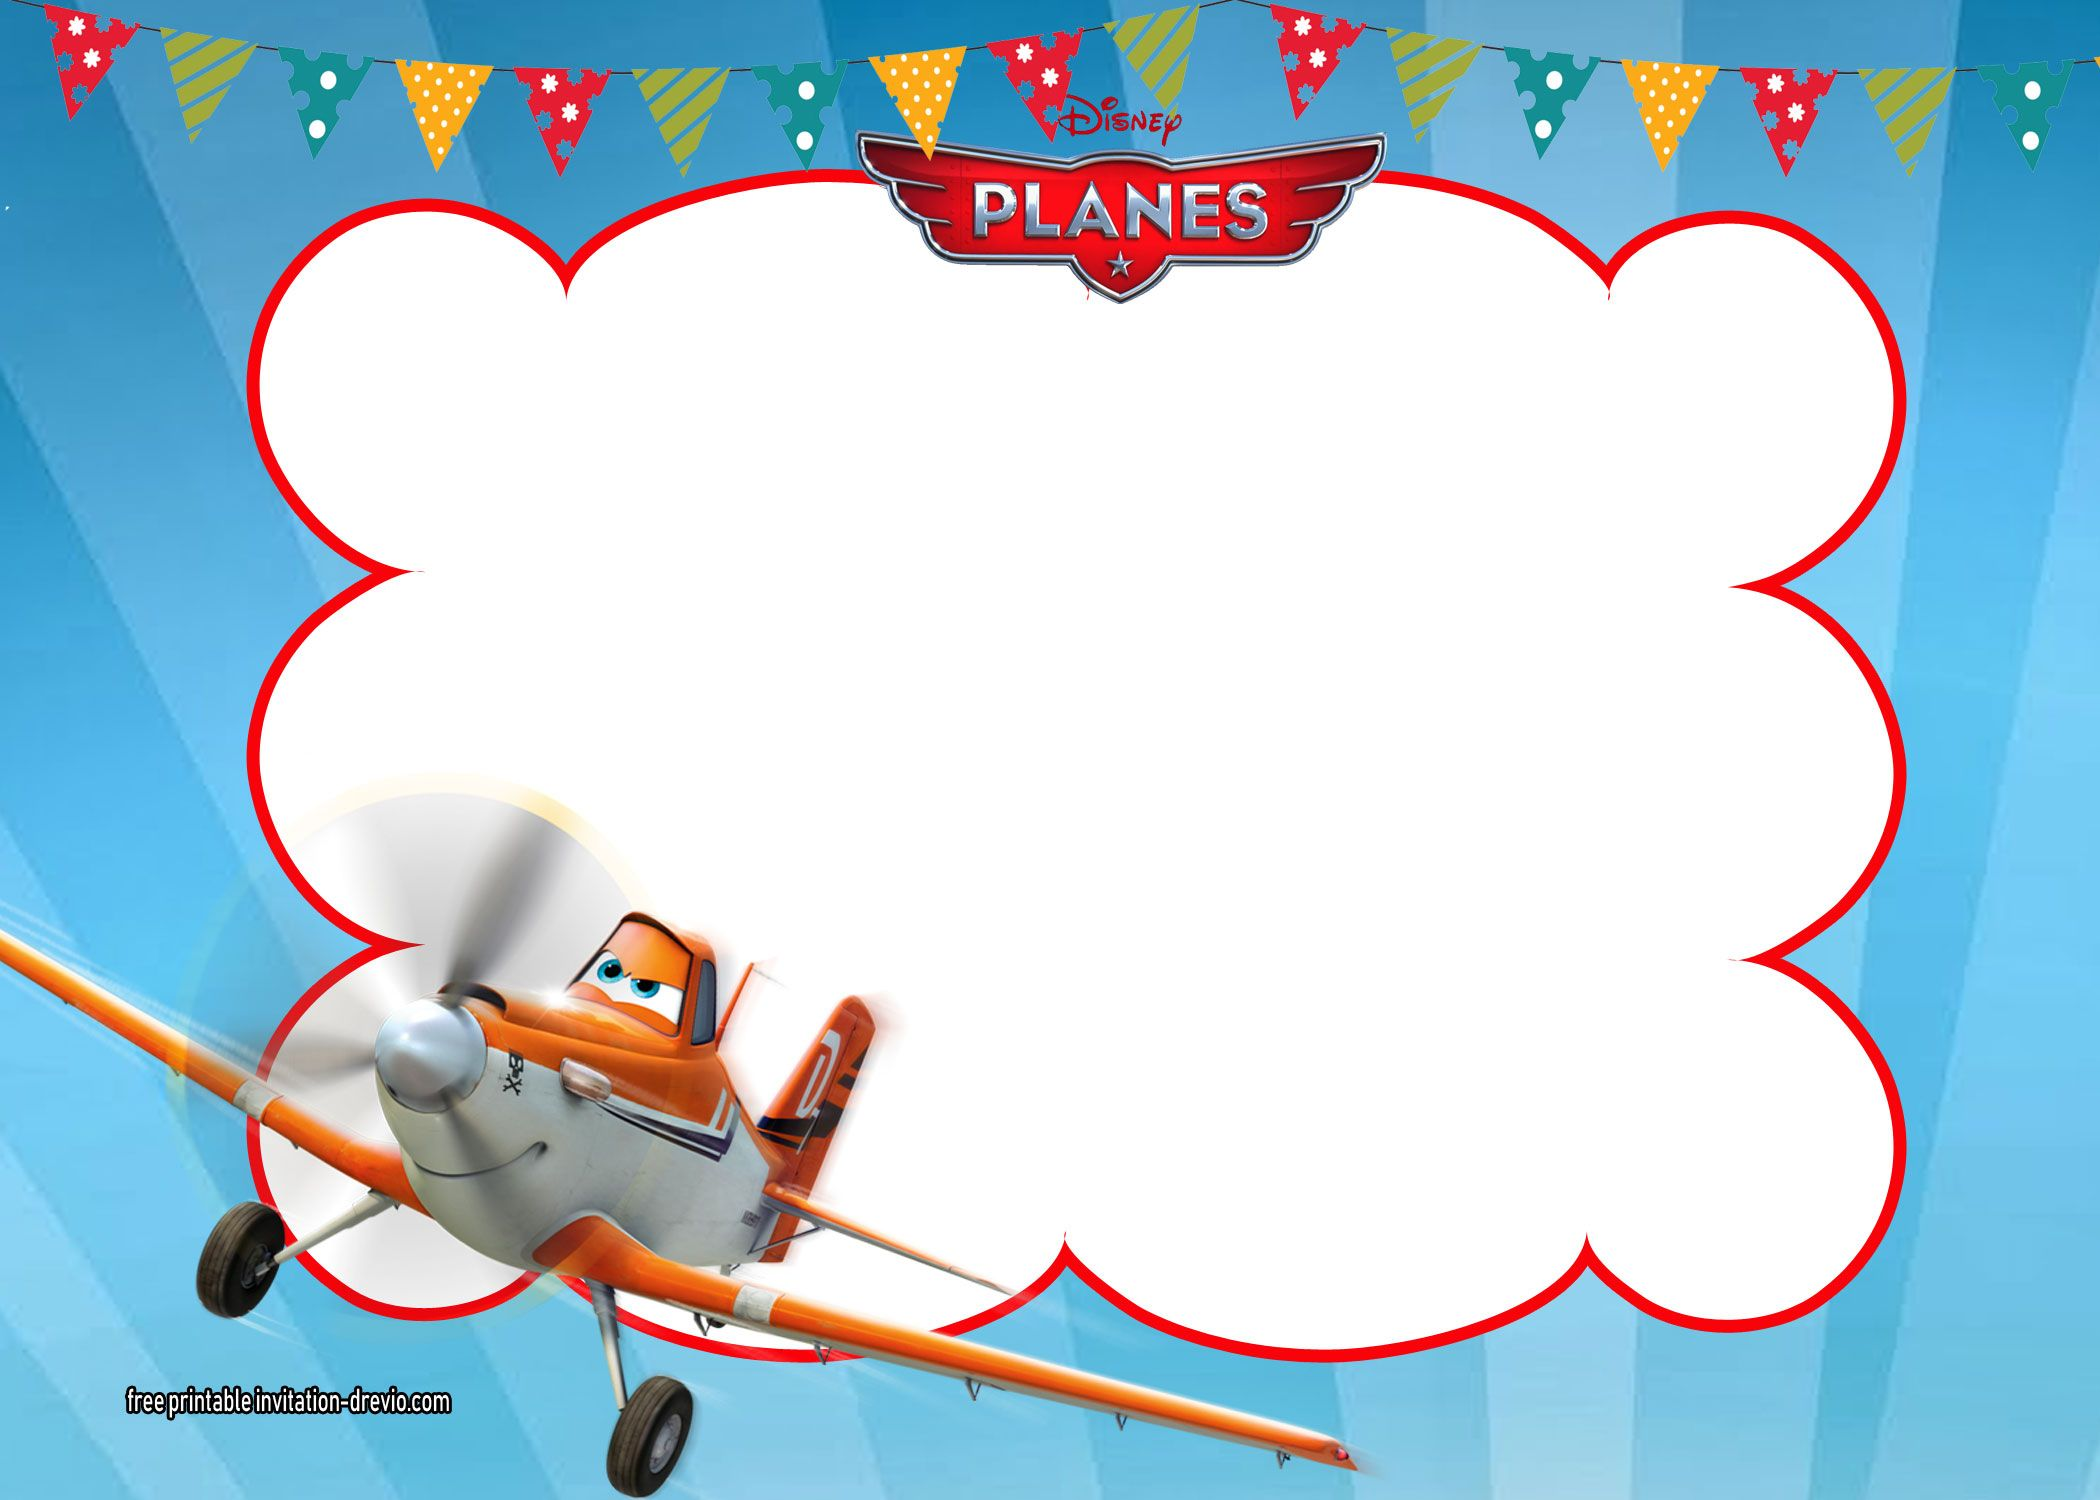 Cool Disney Planes Invitations Templates | Free Printable Birthday ...